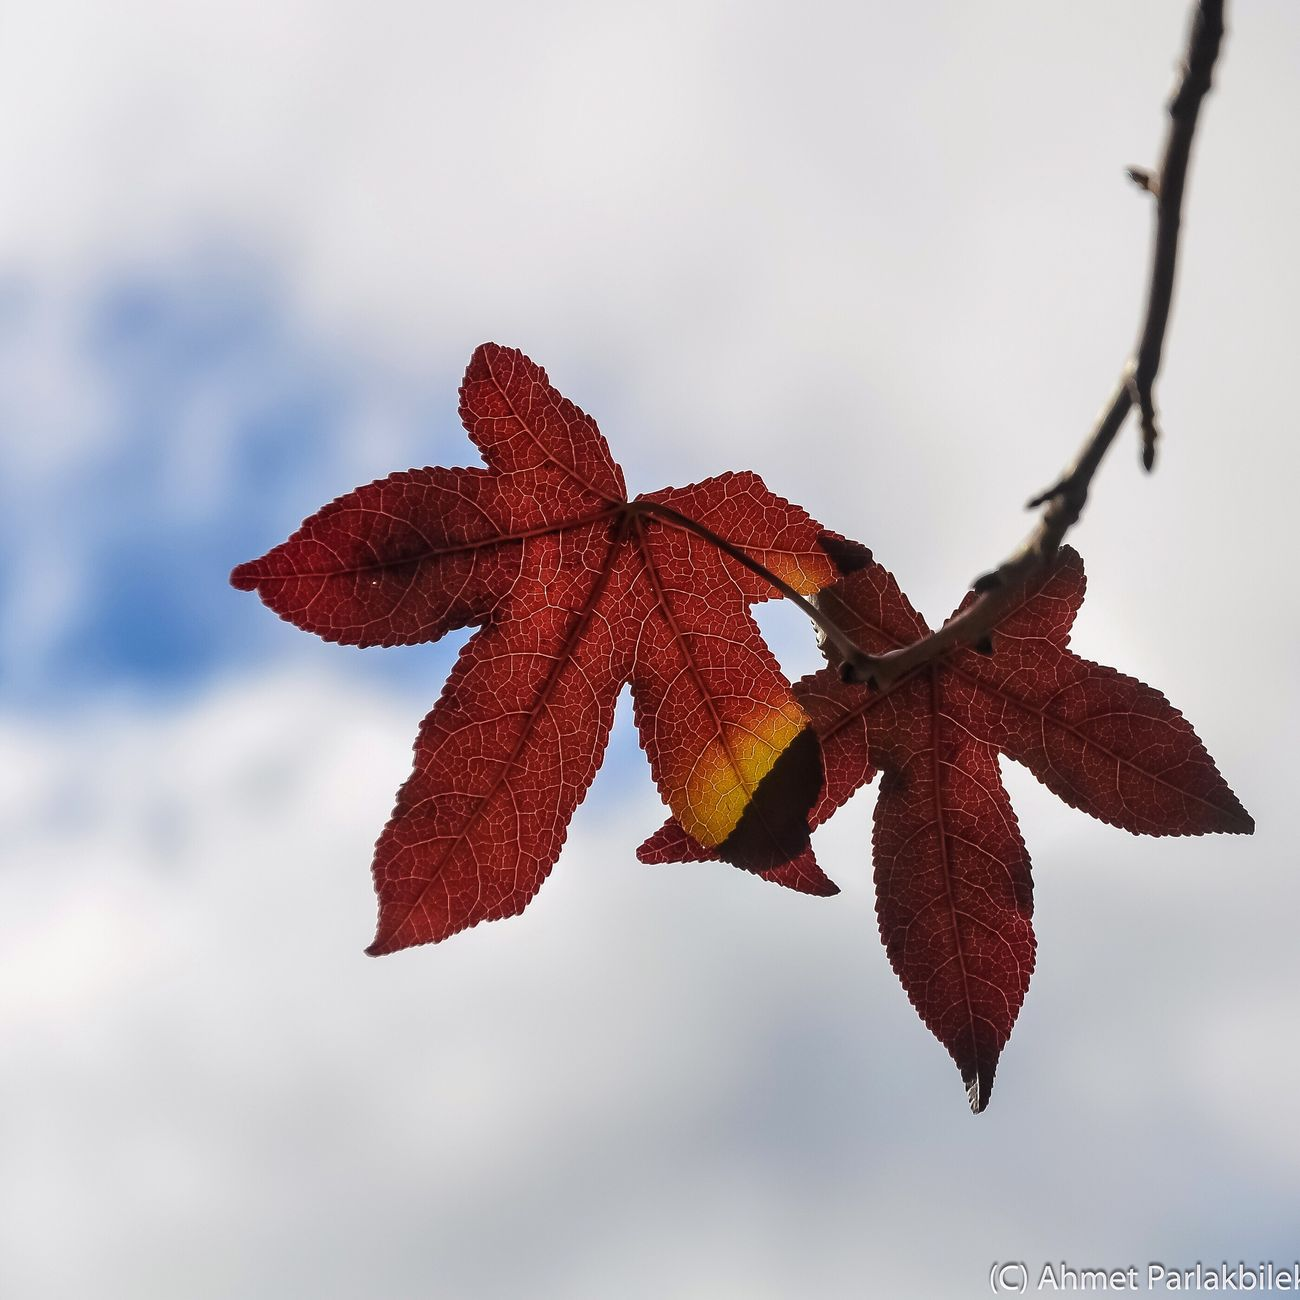 Nature Change Focus On Foreground Autumn Leaf Sky Outdoors Growth No People Close-up Day Leaves Beauty In Nature Maple Leaf Tree Low Angle View Cloud - Sky Maple